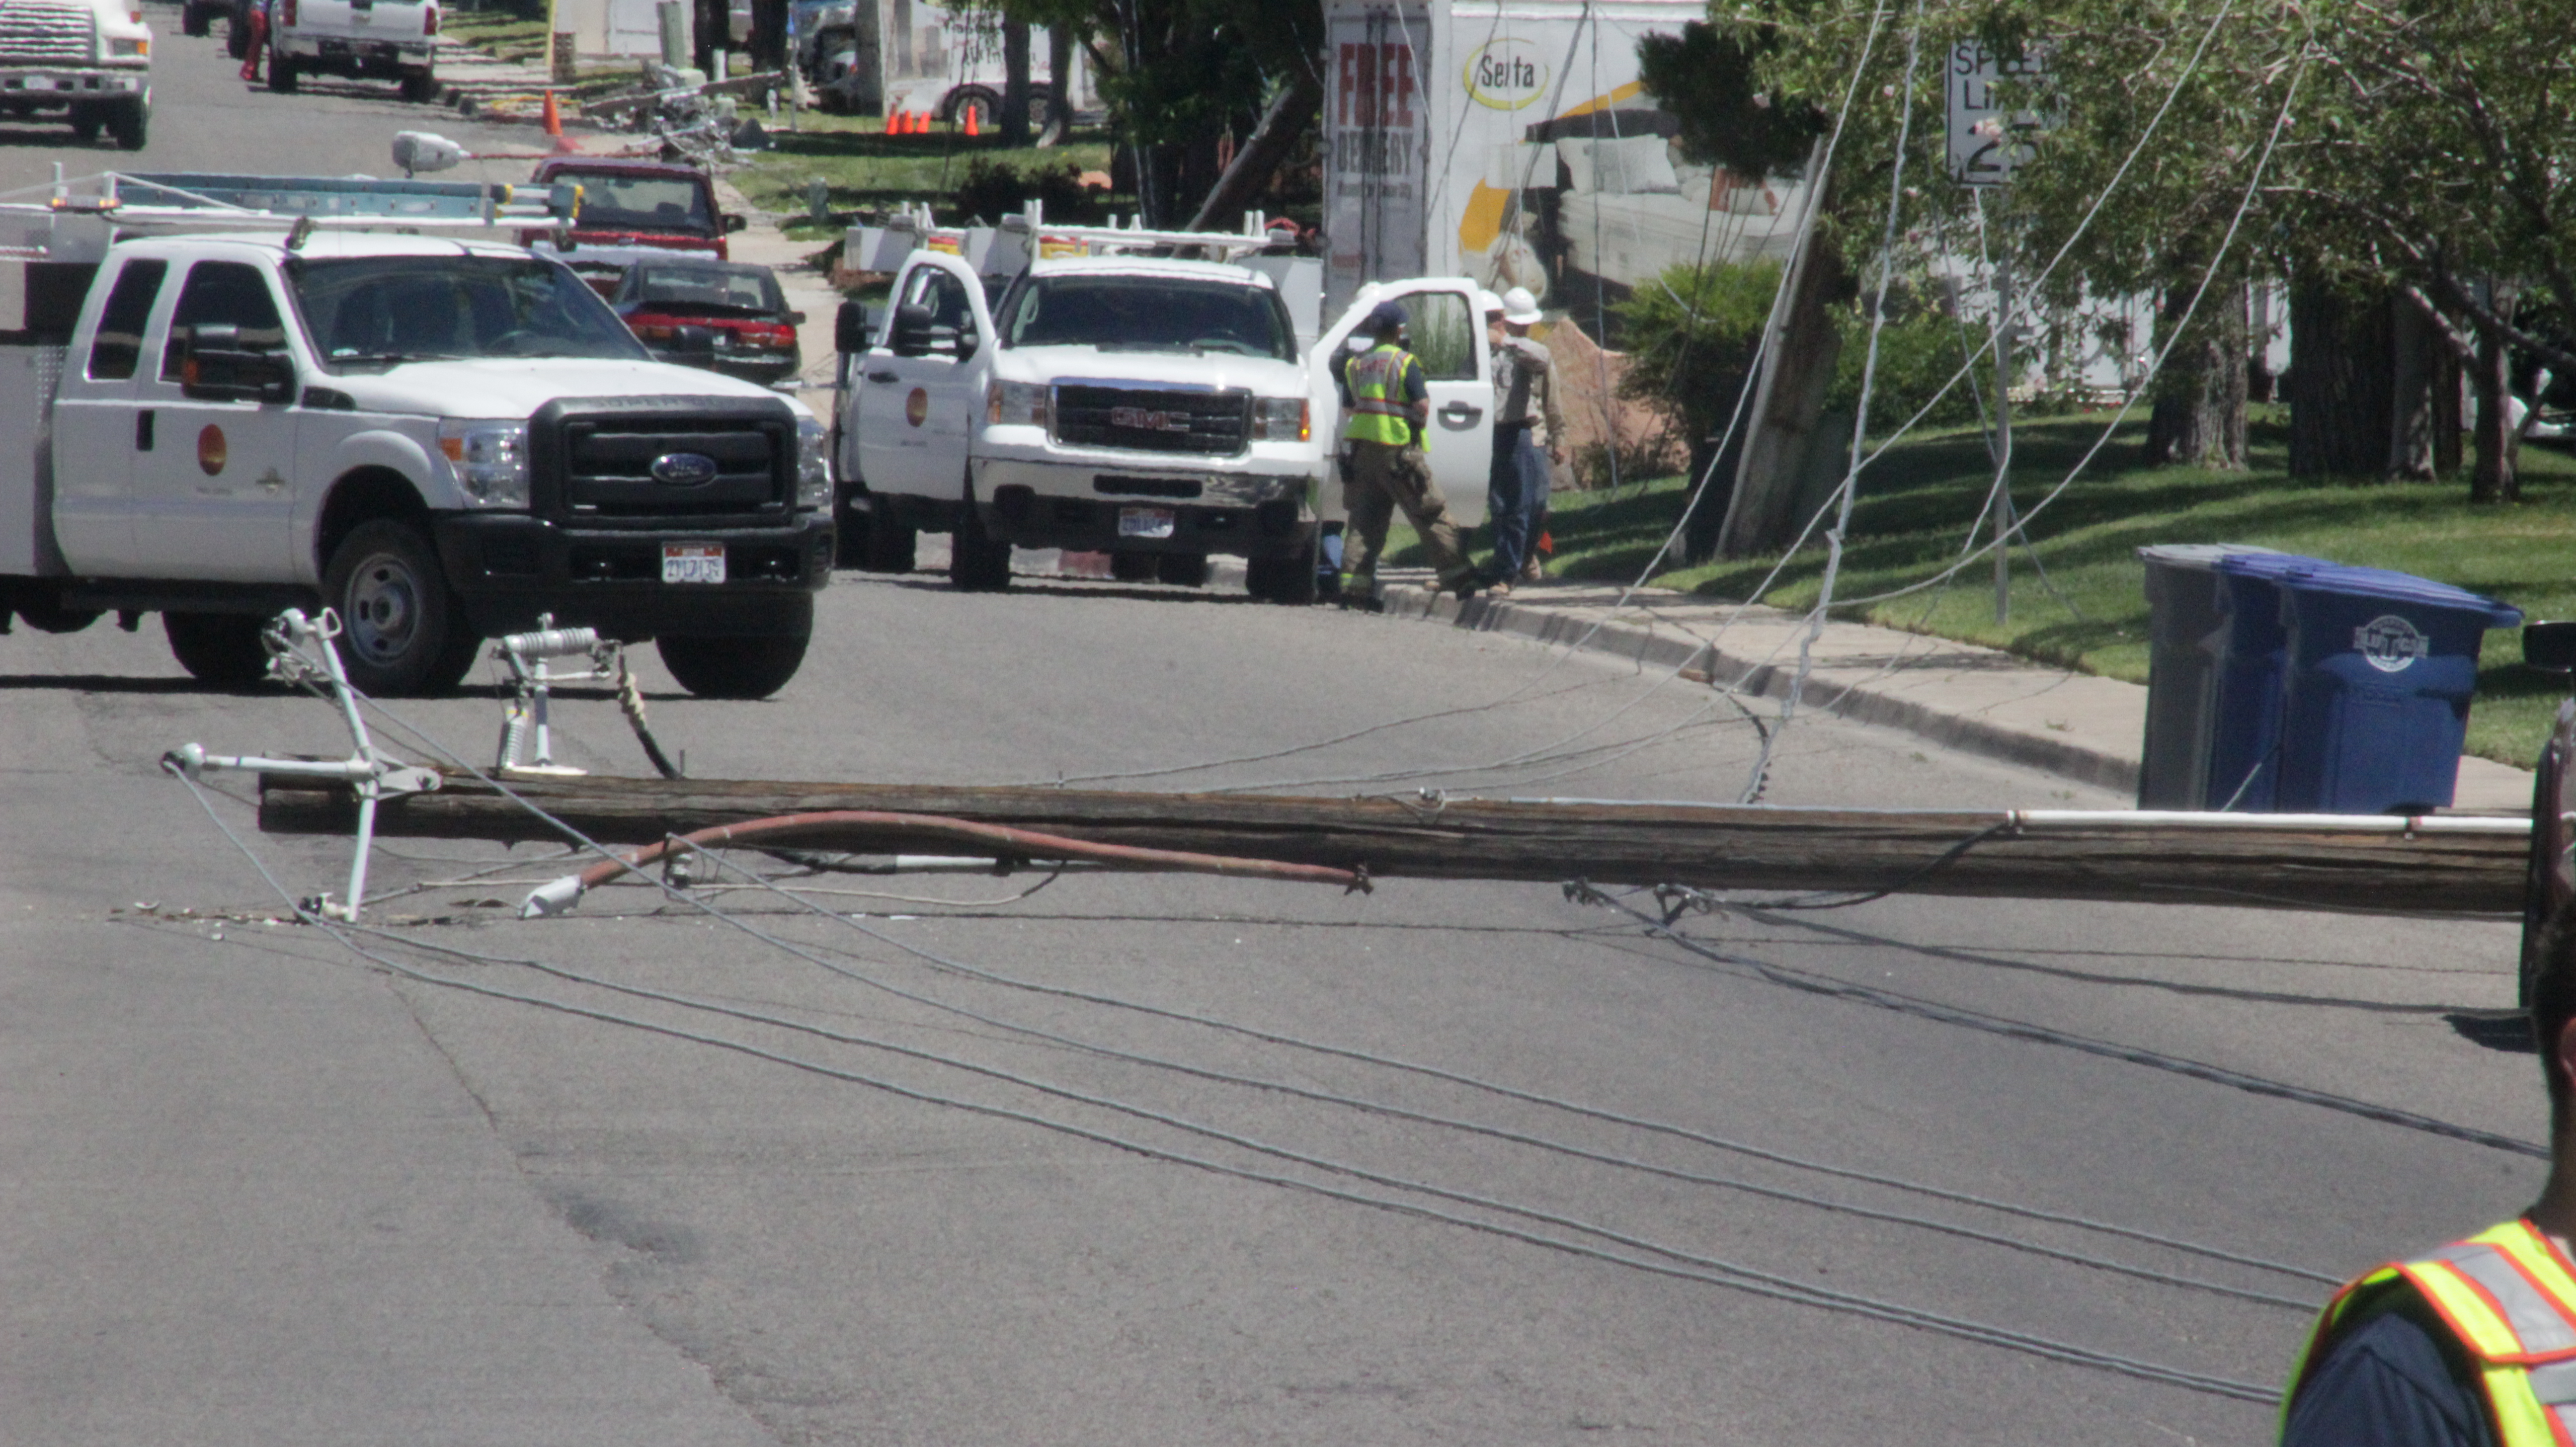 A furniture truck snagged a low-hanging cable line, pulling down five power poles, St. George, Utah, June 17, 2016 | Photo by Don Gilman, St. George News